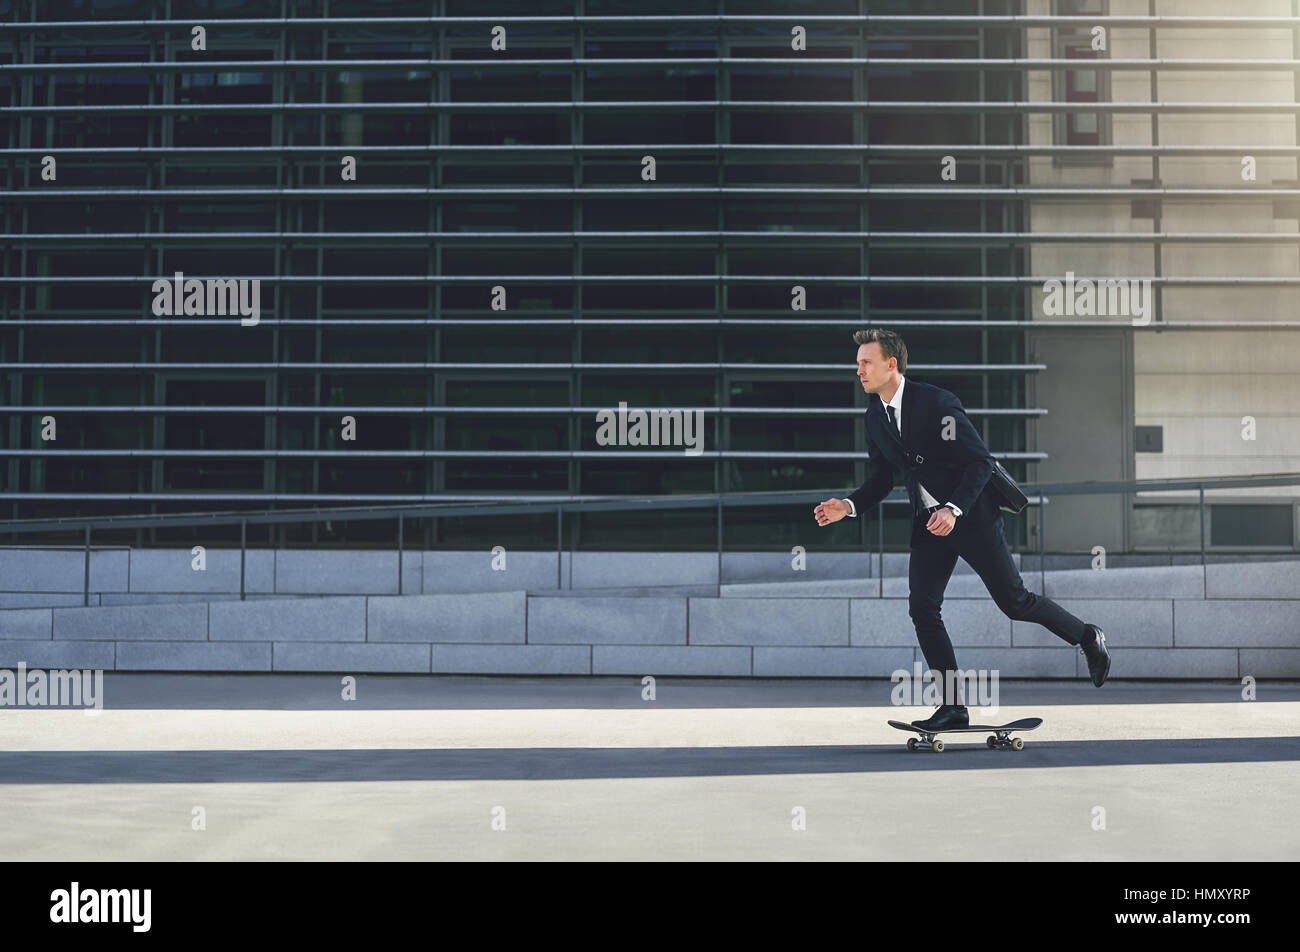 Side view of a businessman pushing himself on a skateboard - Stock Image